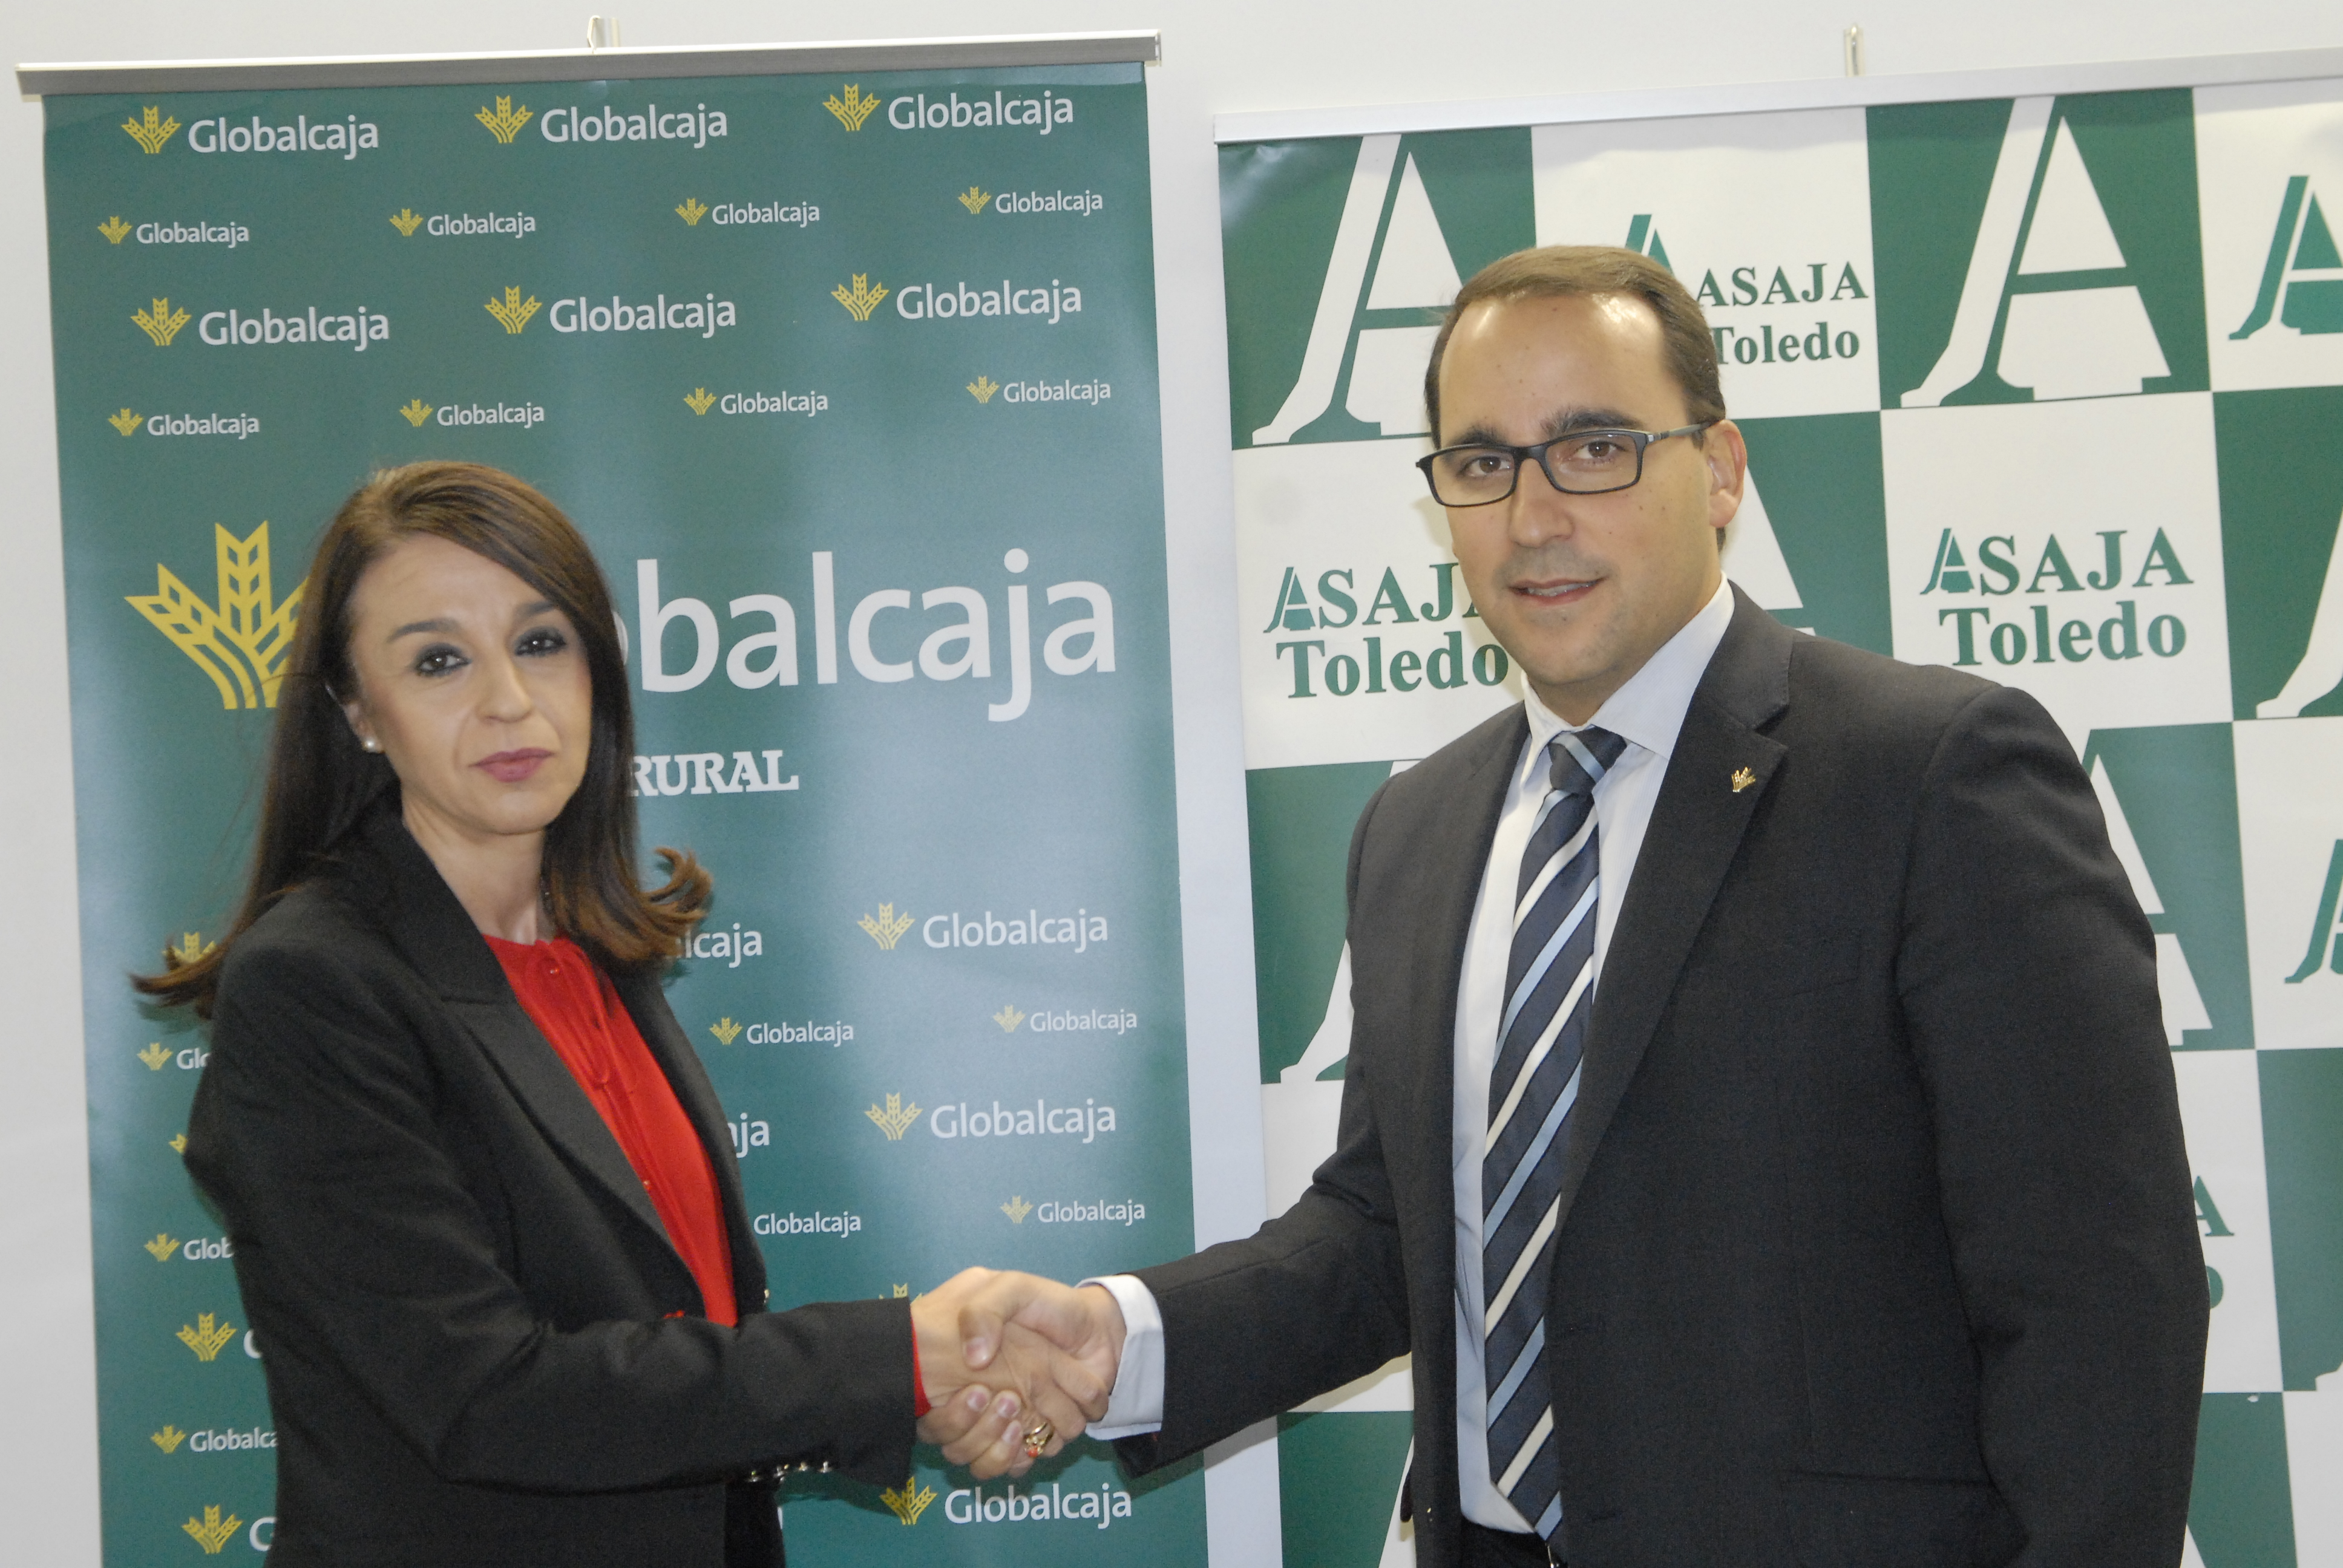 https://blog.globalcaja.es/wp-content/uploads/2015/11/globalcaja-asaja-oct-2015-070.jpg